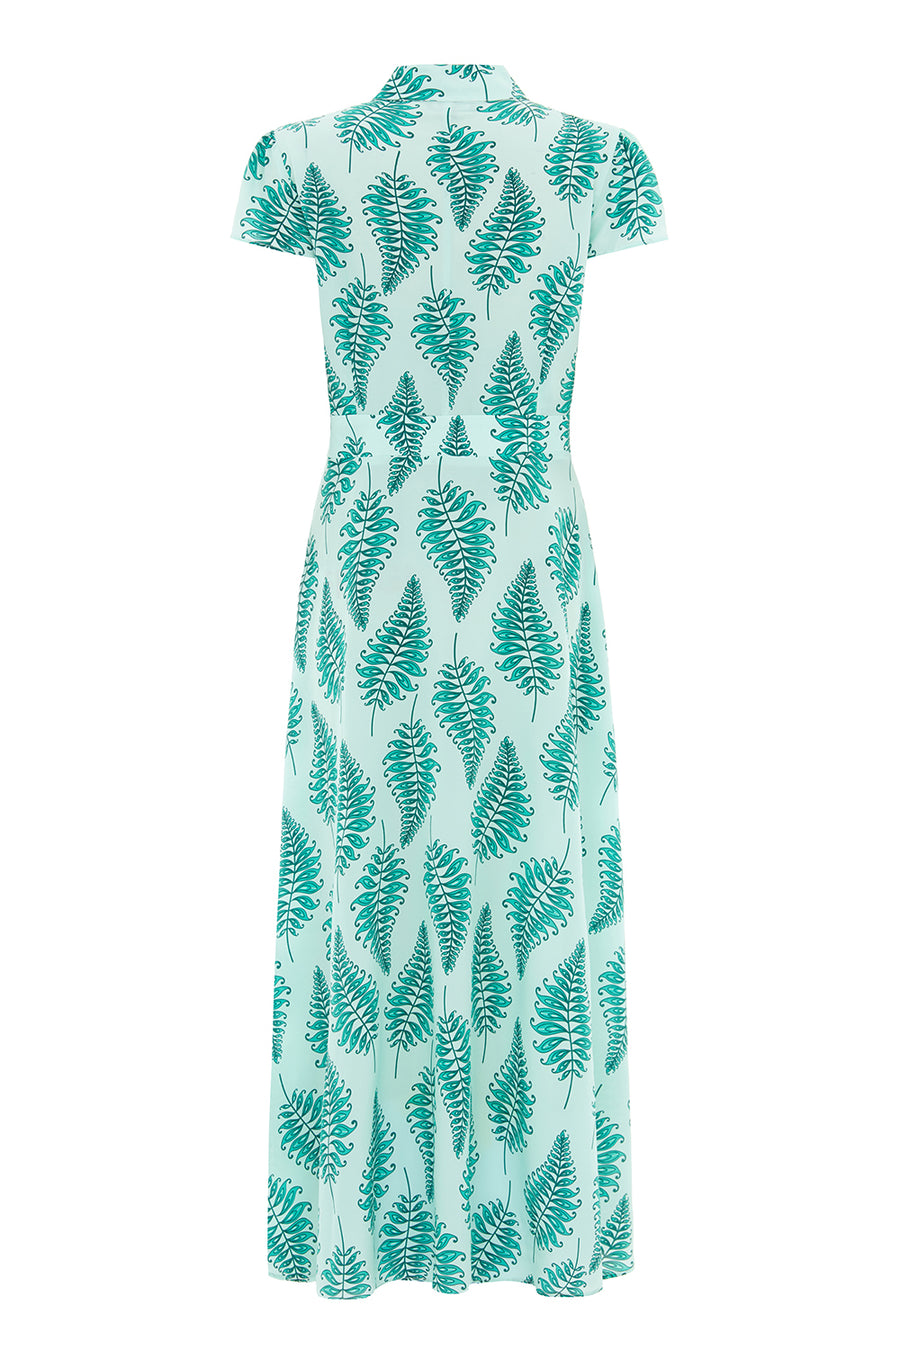 The Mellow Midi | Fallen Fern Green (6573378273476)